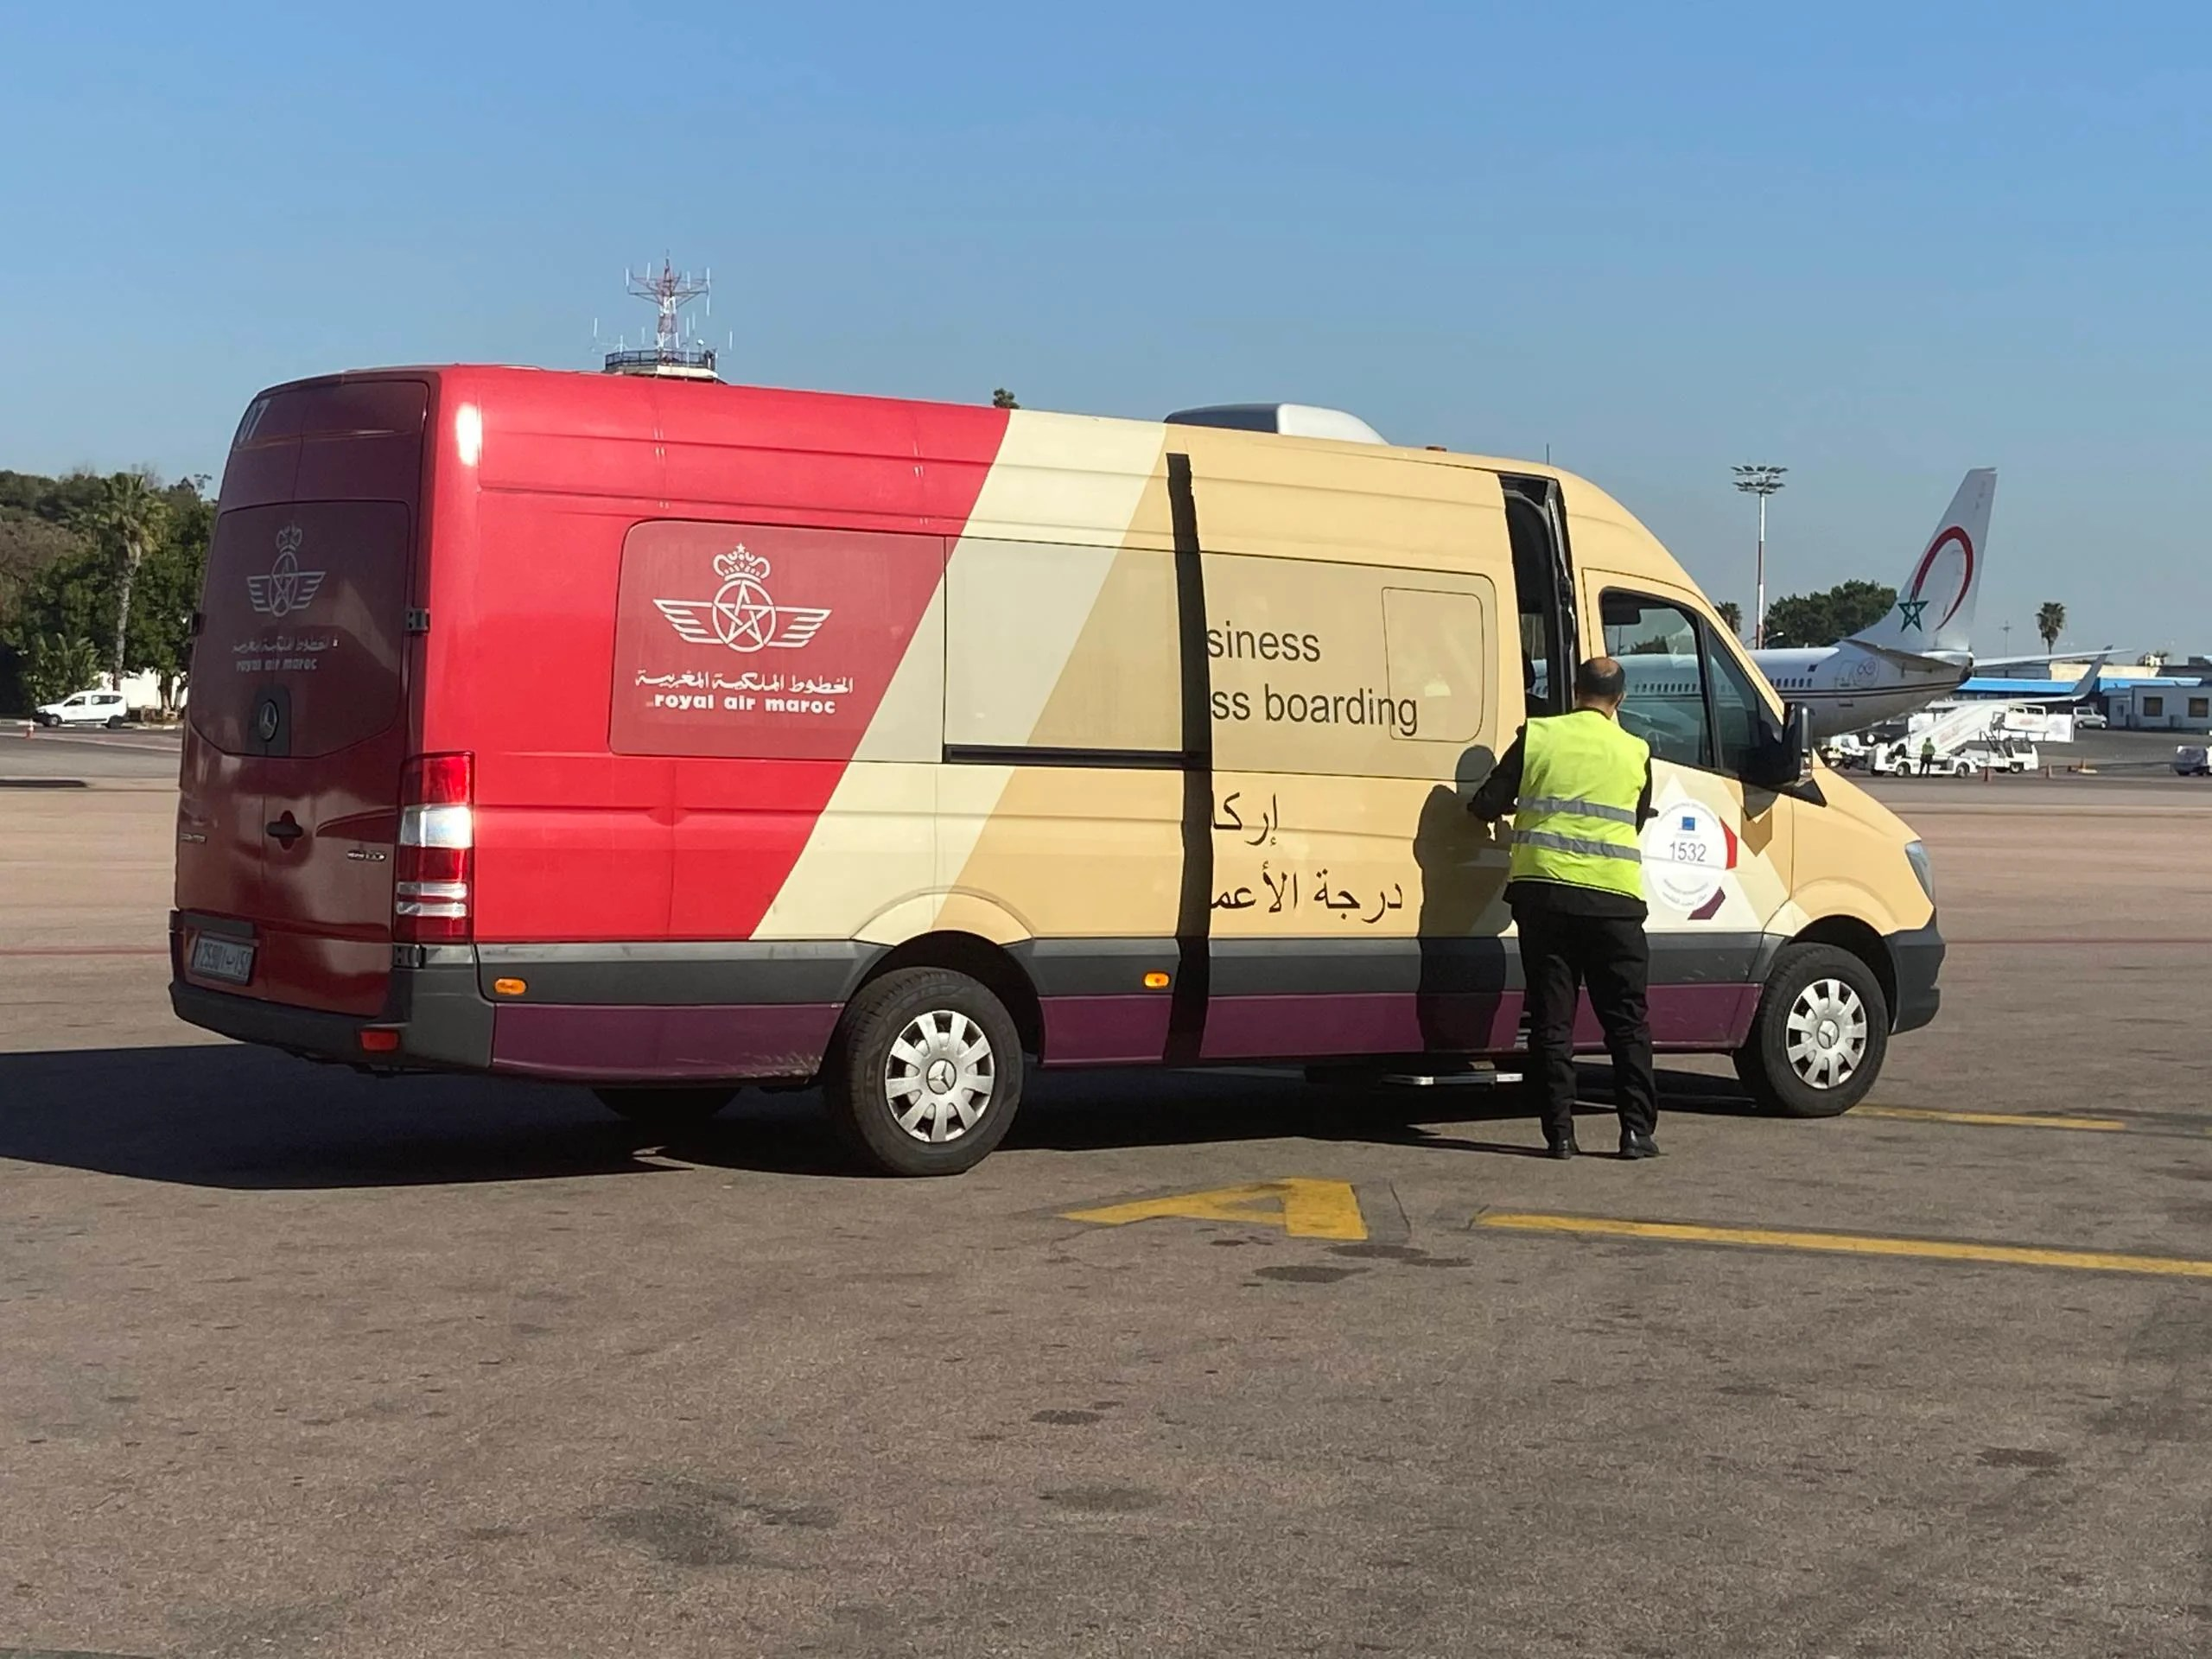 Royal Air Maroc's special van for business class passengers.